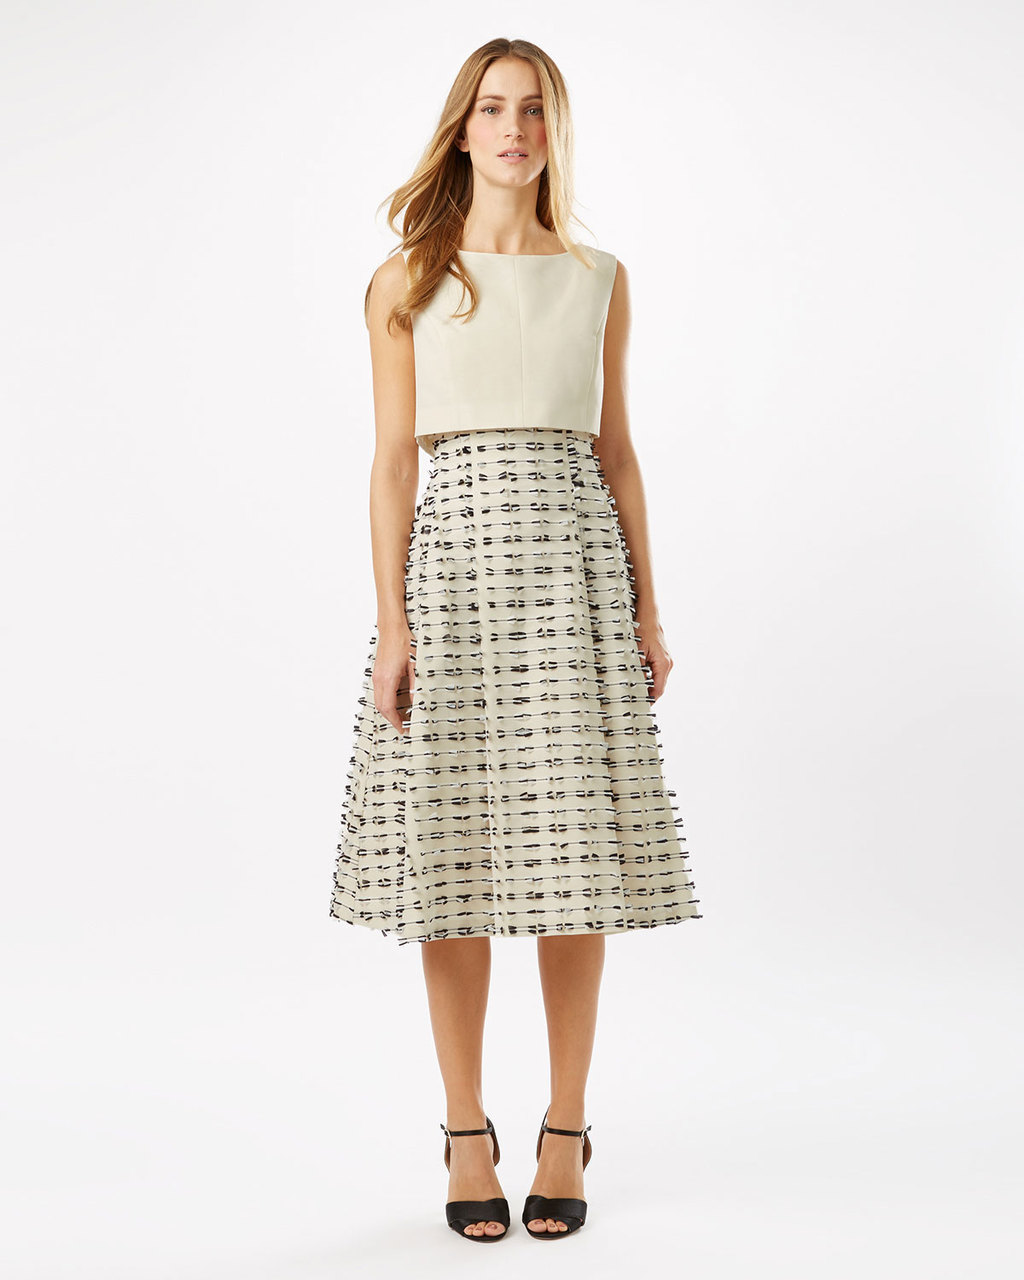 Dress Seven - length: below the knee; sleeve style: sleeveless; pattern: checked/gingham; waist detail: fitted waist; predominant colour: ivory/cream; secondary colour: mid grey; occasions: evening; fit: soft a-line; style: fit & flare; fibres: cotton - mix; neckline: crew; hip detail: soft pleats at hip/draping at hip/flared at hip; bust detail: contrast pattern/fabric/detail at bust; sleeve length: sleeveless; pattern type: fabric; pattern size: light/subtle; texture group: other - light to midweight; season: s/s 2016; wardrobe: event